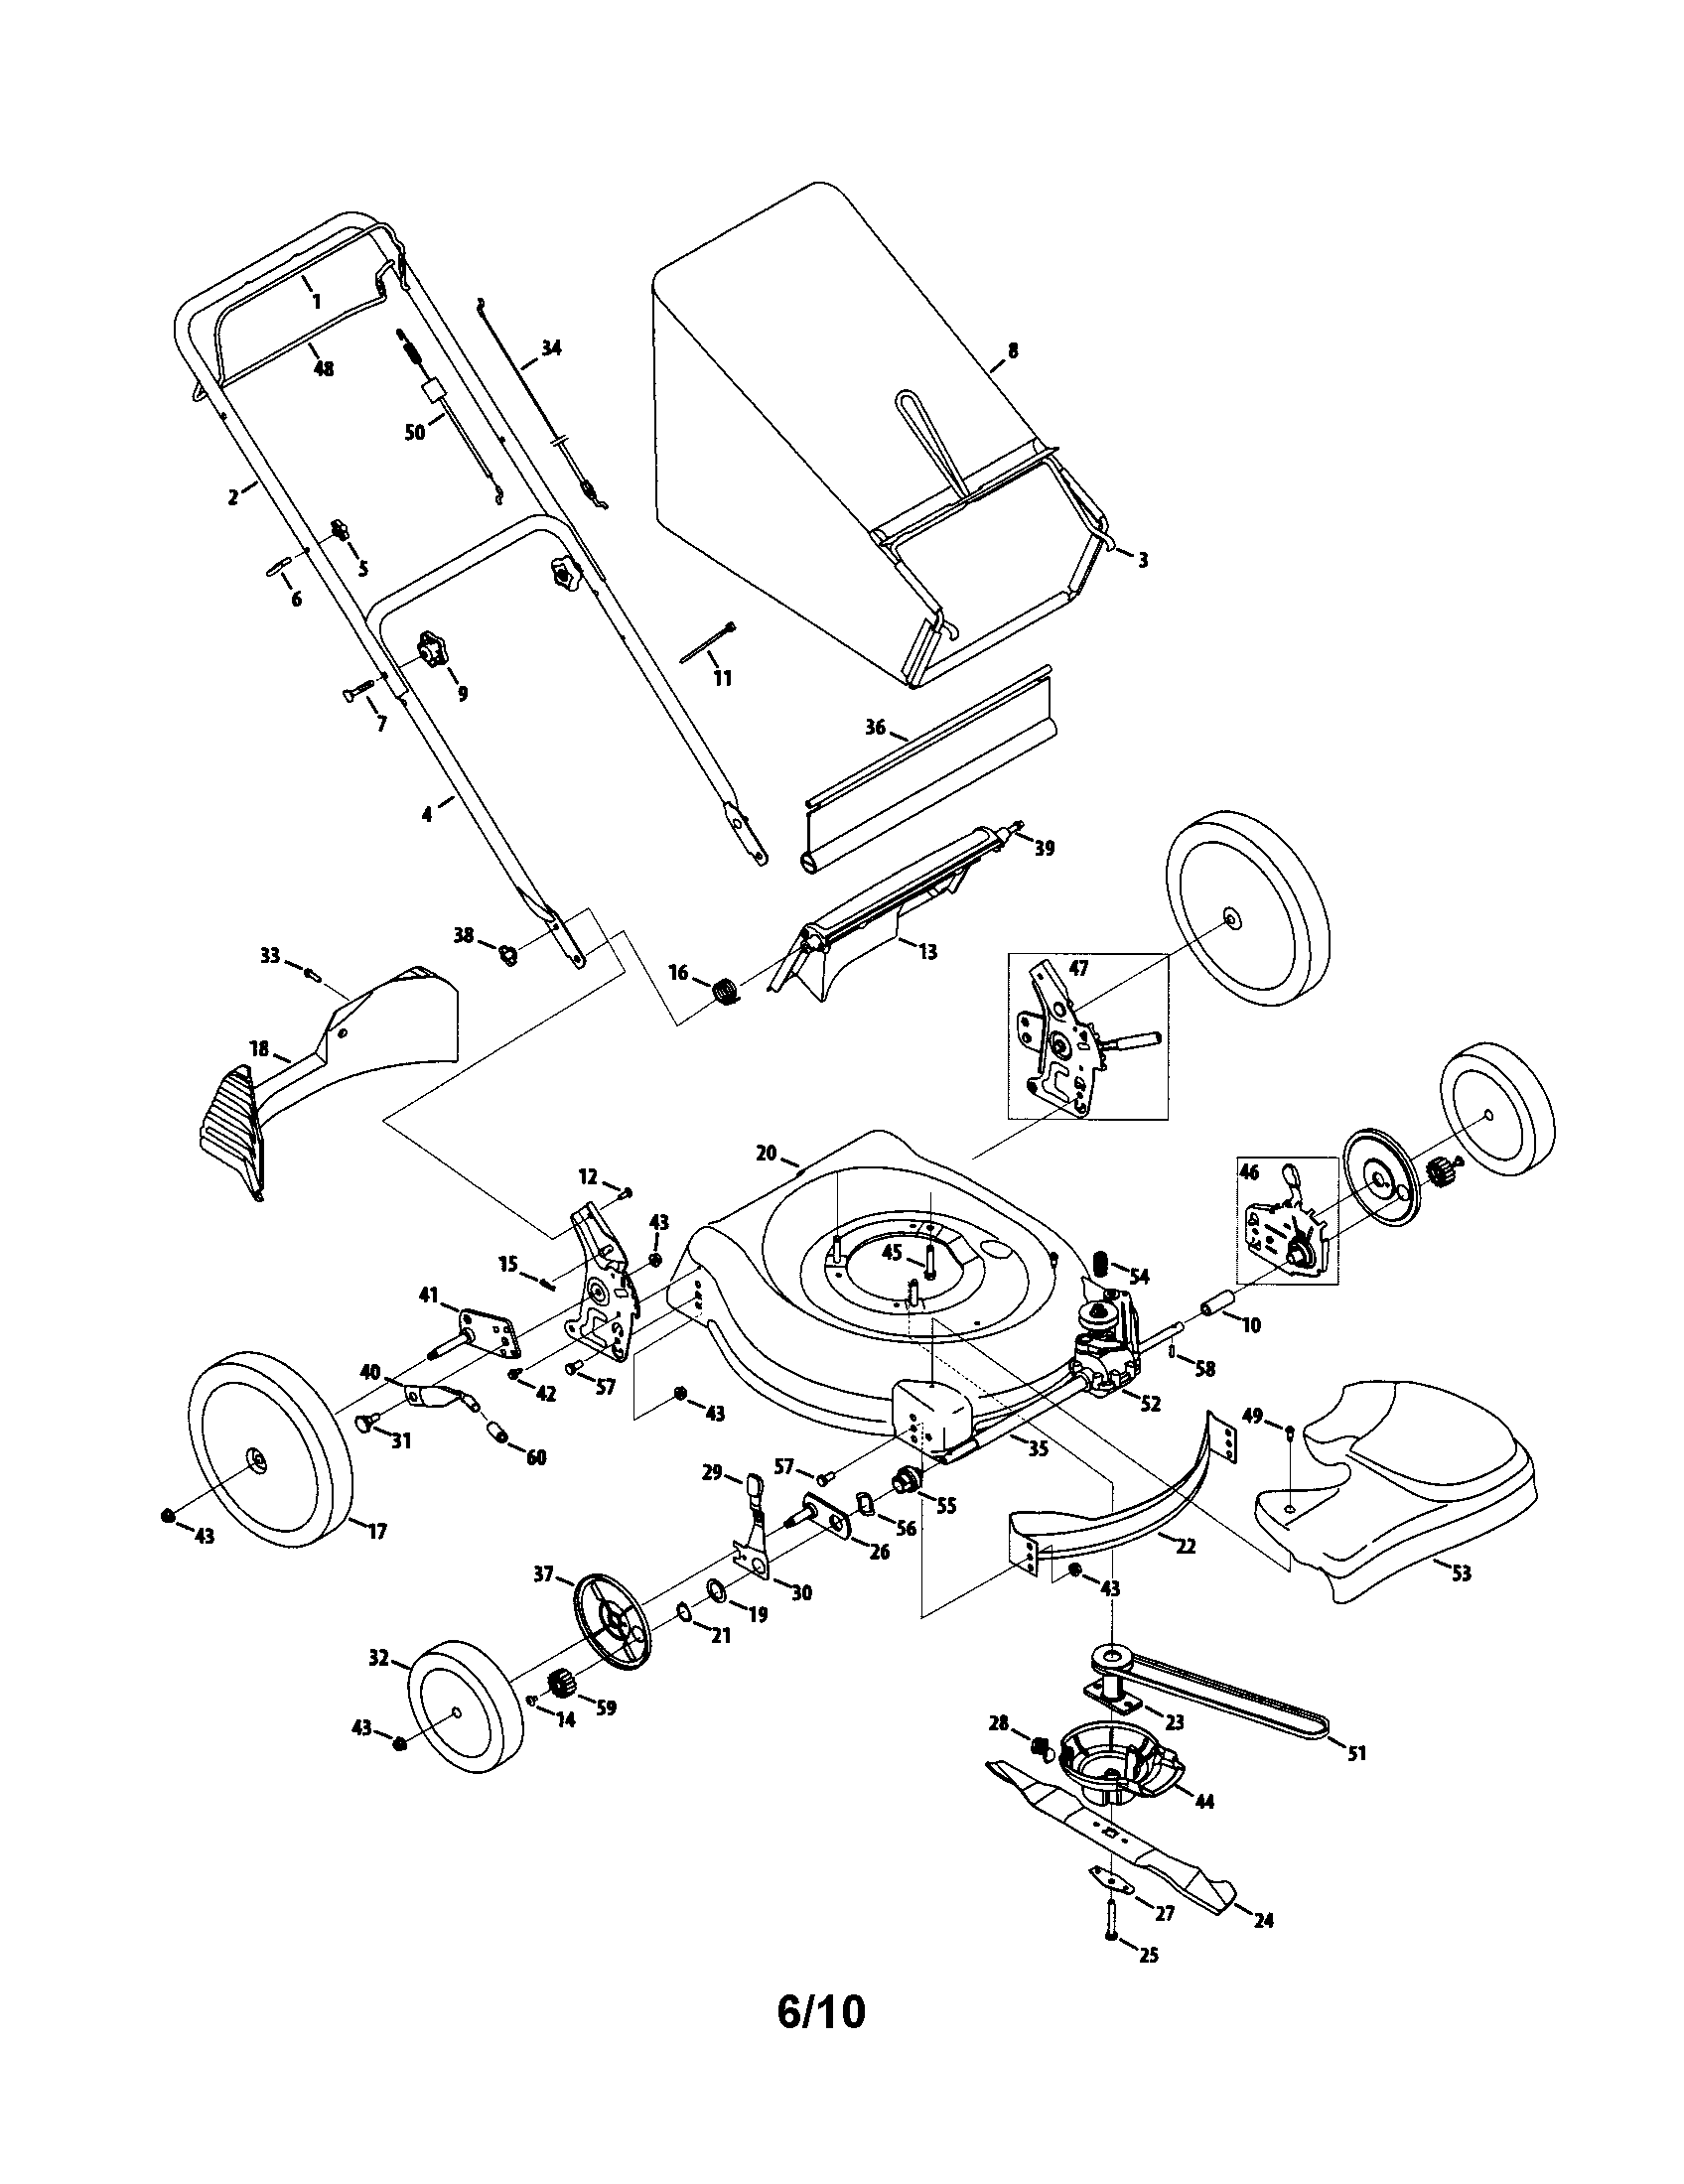 hight resolution of mtd yard machine lawn mower parts besides mtd lawn mower parts diagram